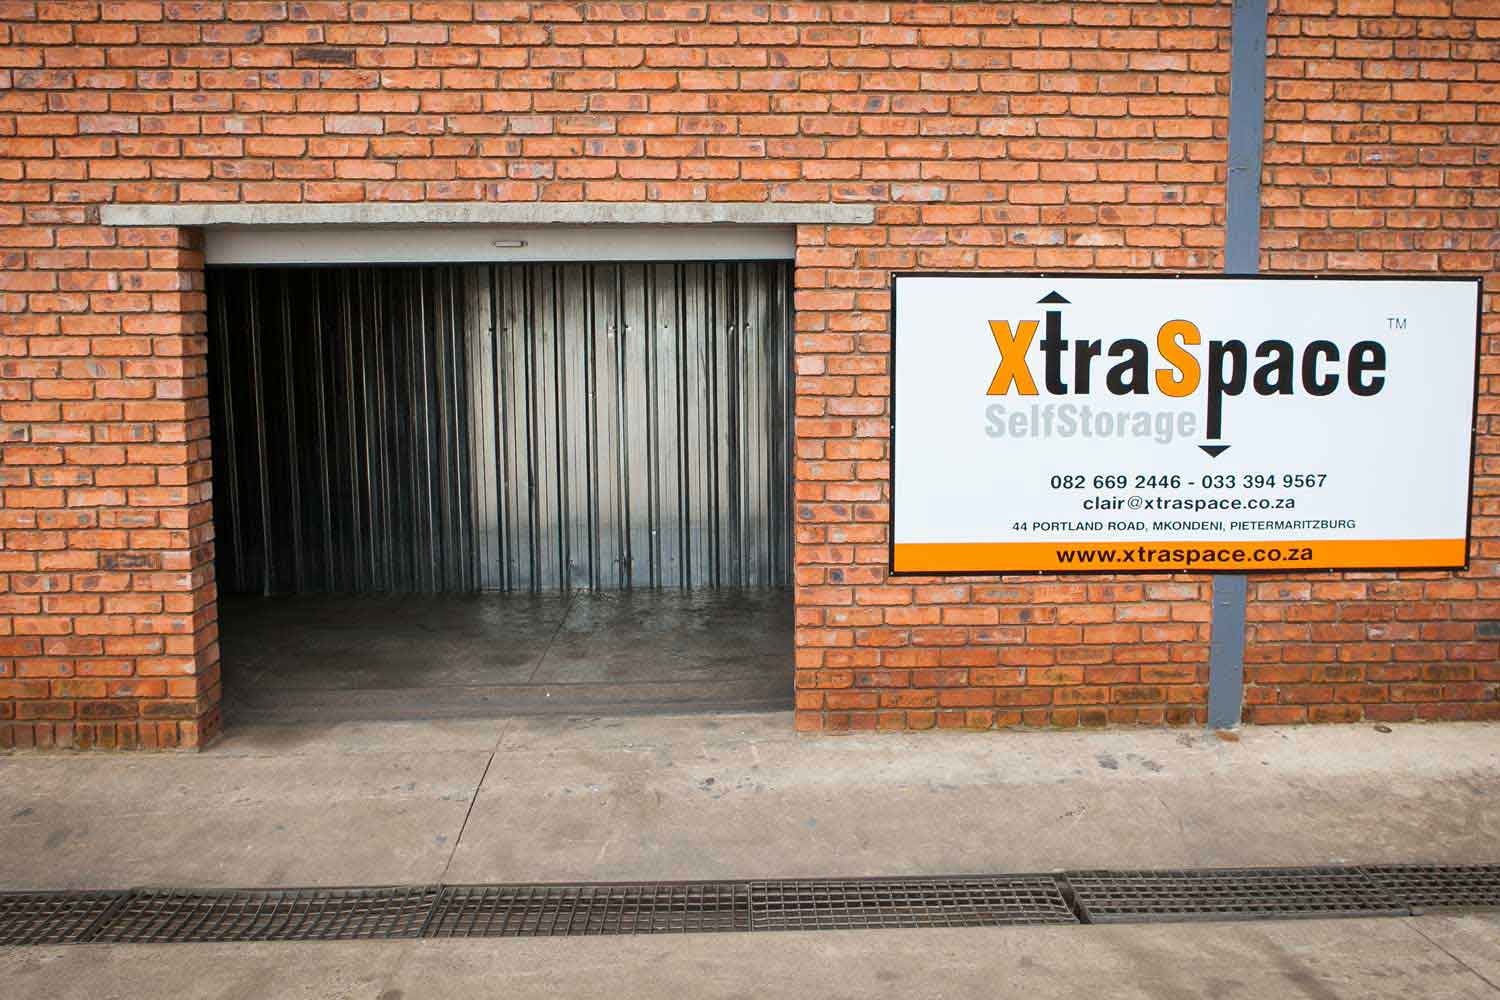 Self storage unit at XtraSpace Mkondeni